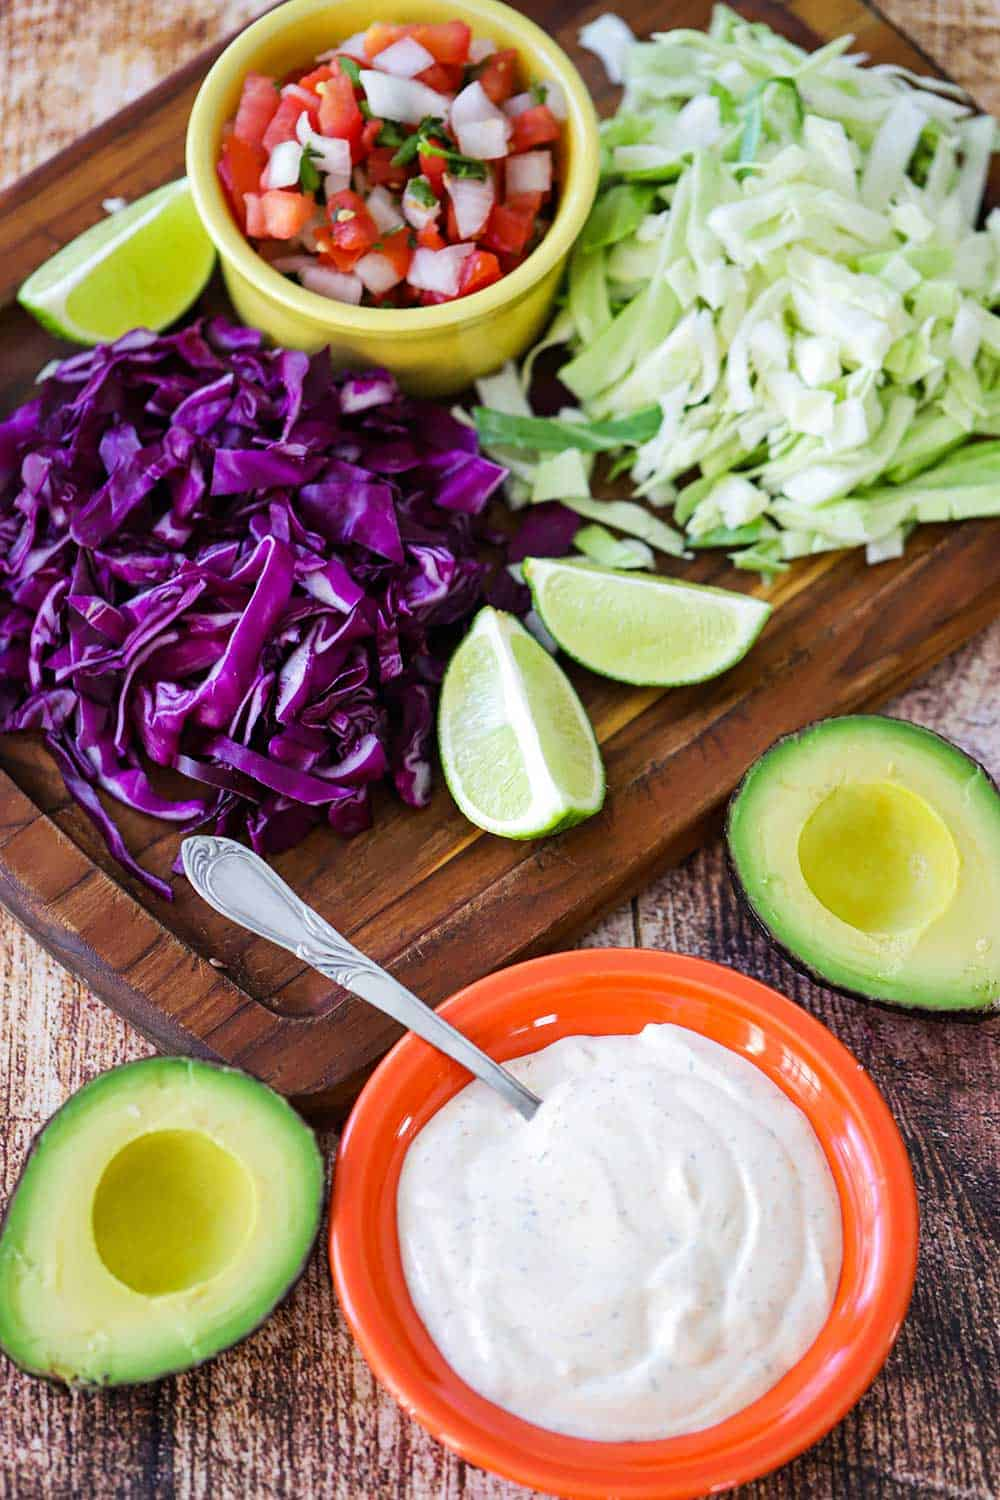 An overhead view of a bowl of Baja sauce, sliced avocados, chopped cabbage, lime wedges, and pico de gallo.